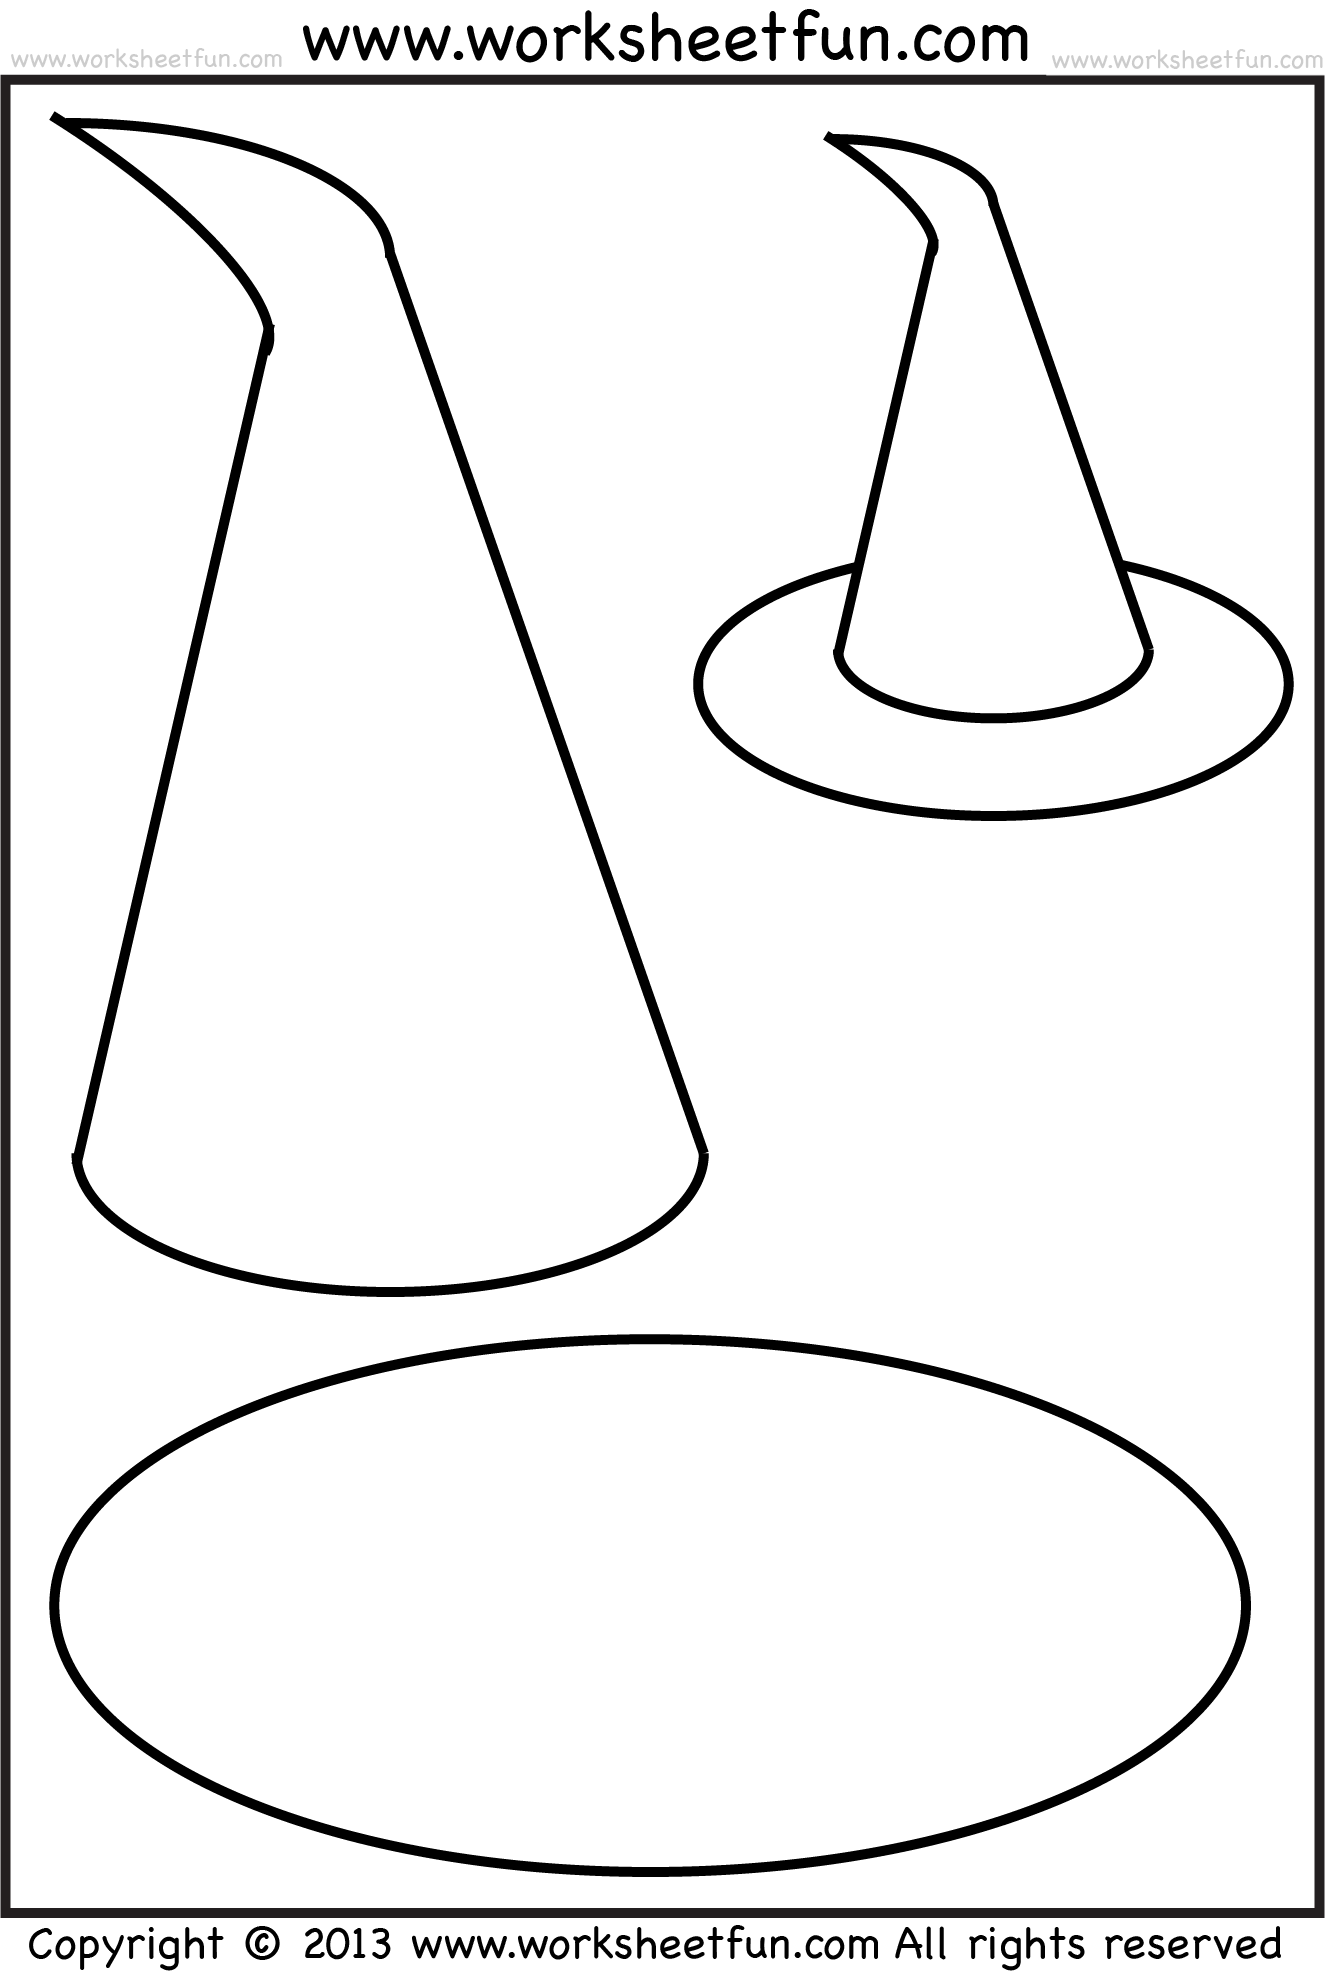 Witch Hat Tracing Coloring And Cutting 5 Halloween Worksheets Free Printable Worksheets